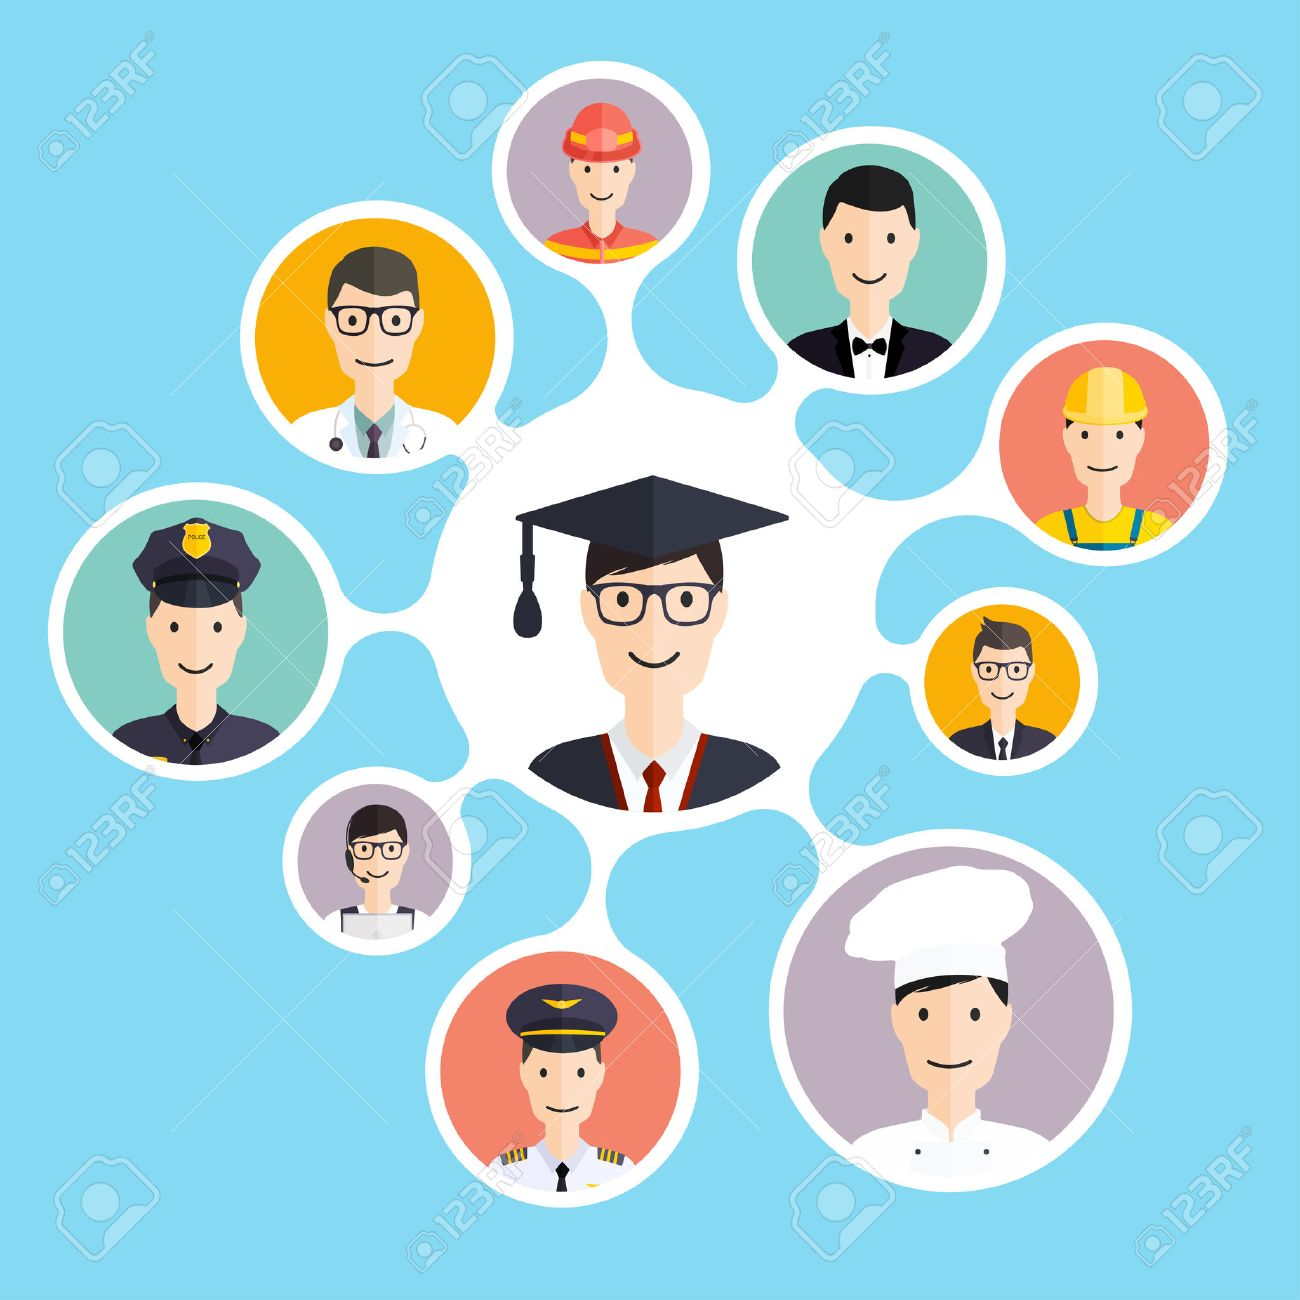 graduation male student make career choices businessman doctor graduation male student make career choices businessman doctor artist designer cook